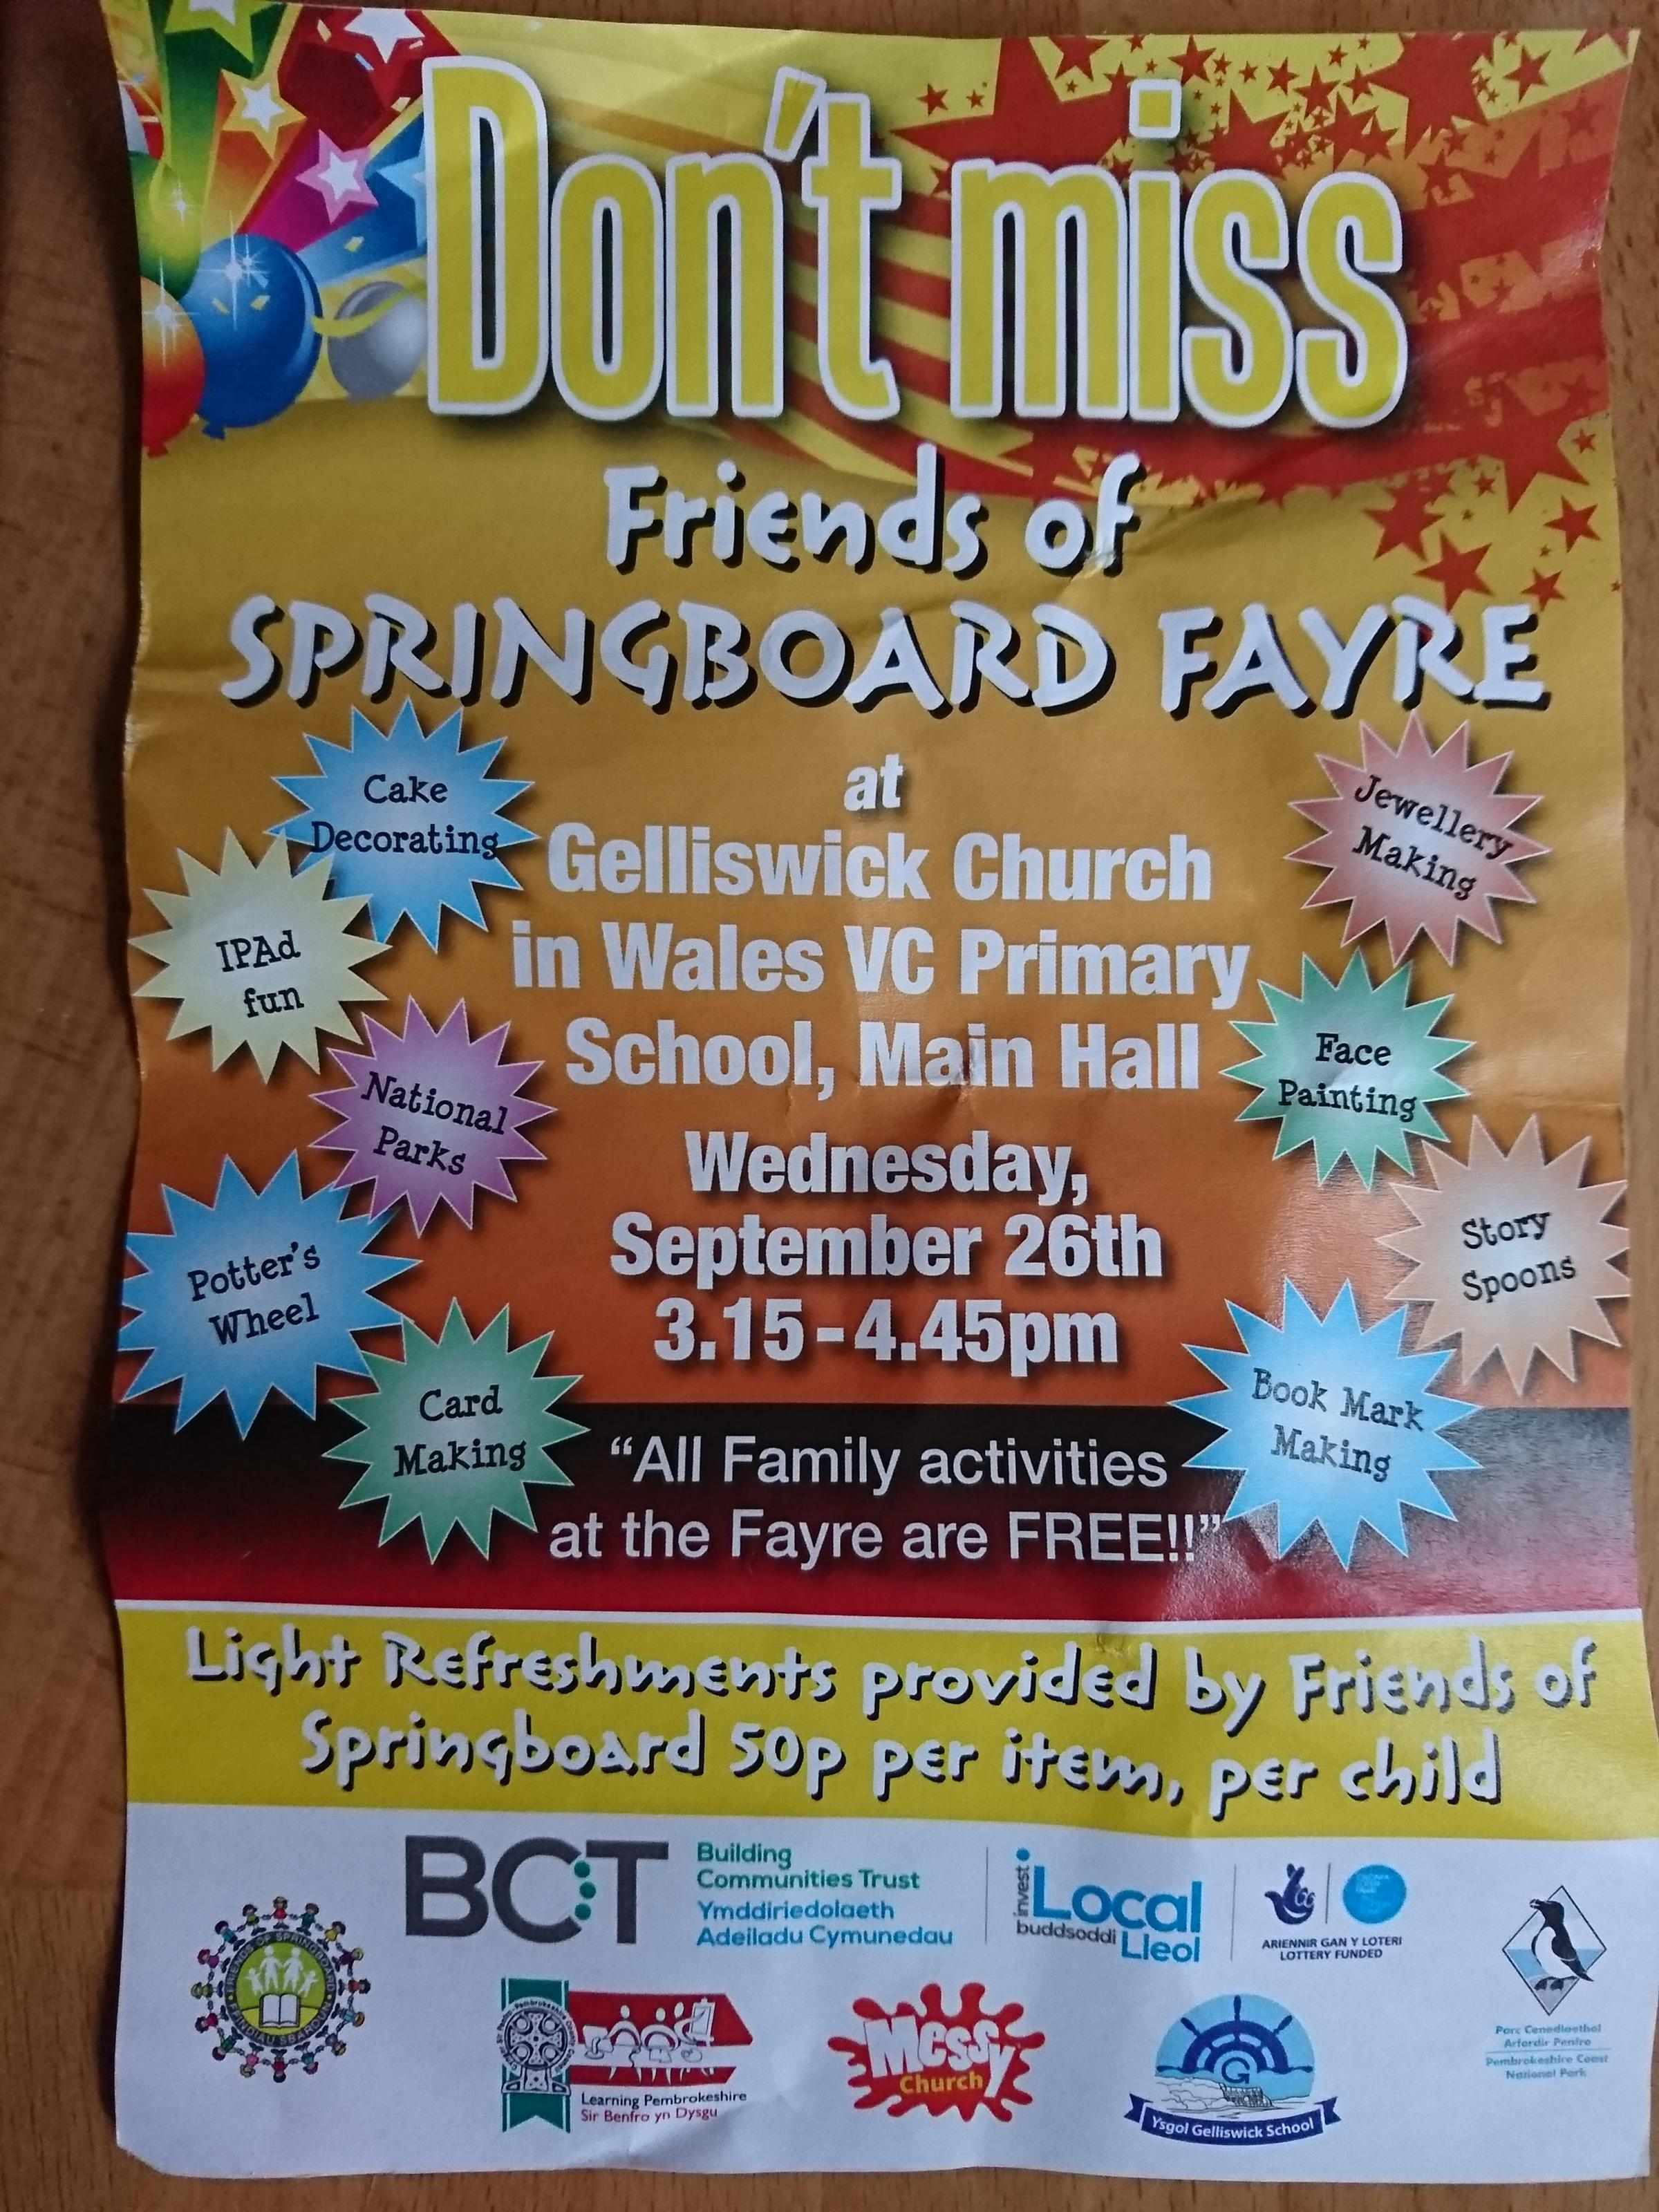 Friends of Springboard fayre